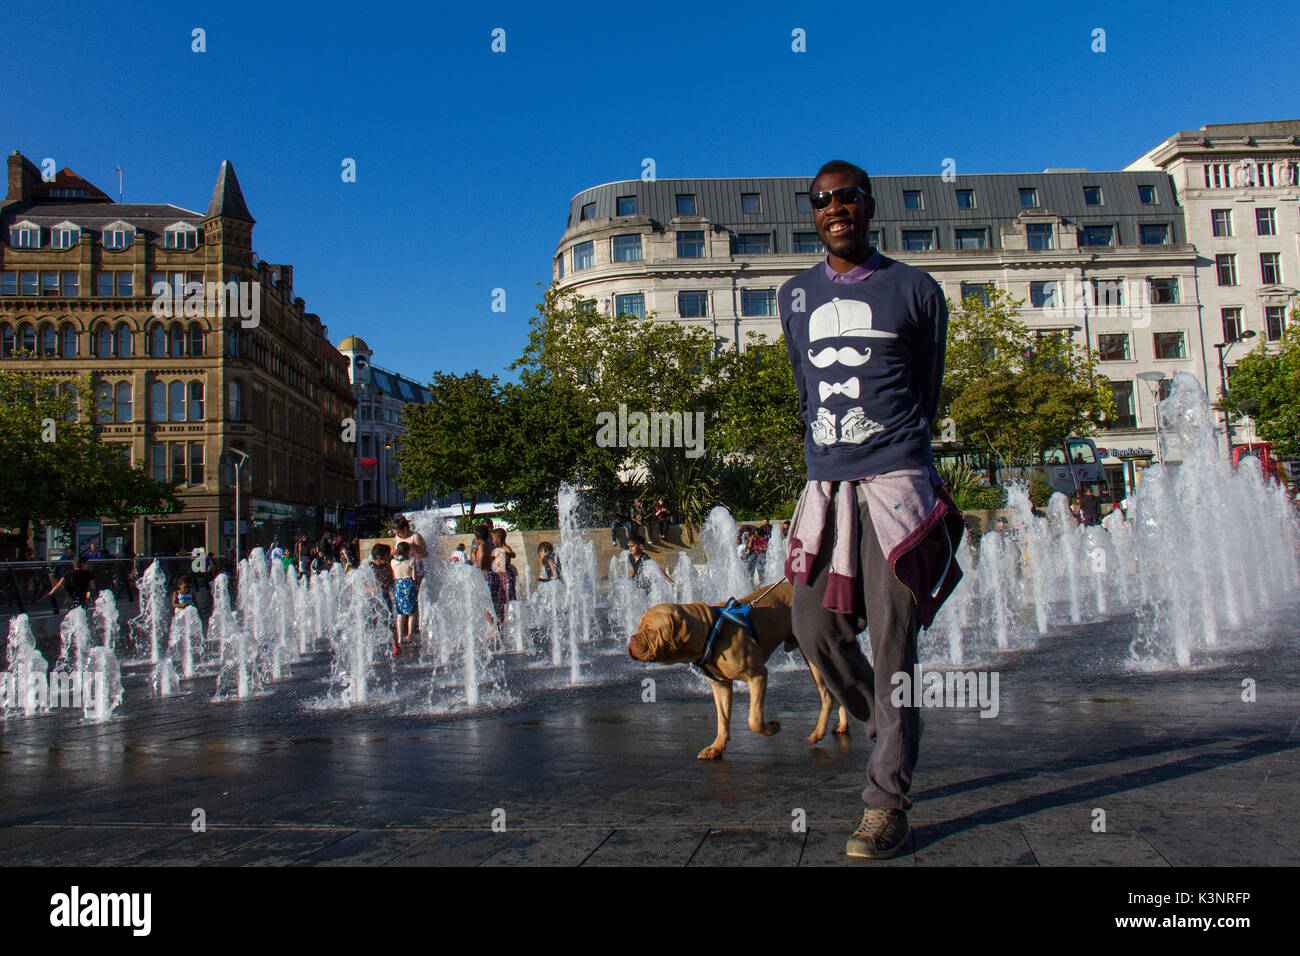 Manchester, United Kingdom - 15 August, 2017: Man and his dog walk by the Picadilly Gardens water fountains in Manchester city centre on a sunny day - Stock Image